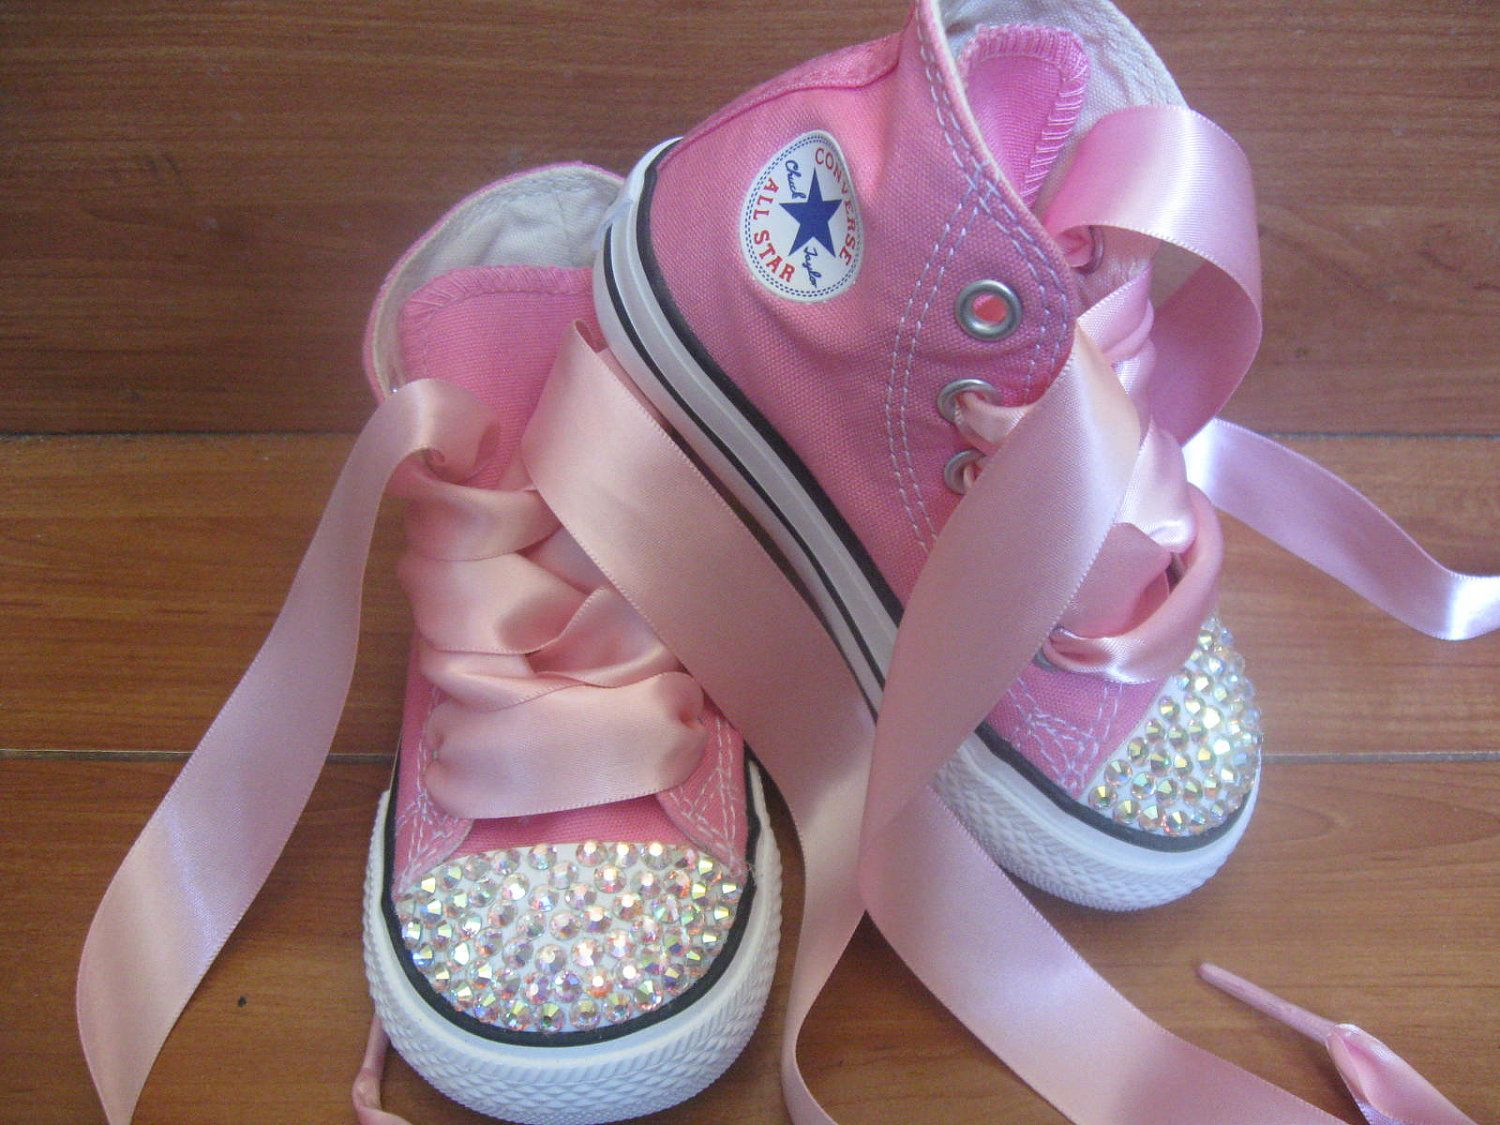 a916affa4273 PINK BLING CONVERSE High Tops Size Infant Toddler 2 - Youth 3 with  Swarovski Crystals - Also Available in Black and Red Converse